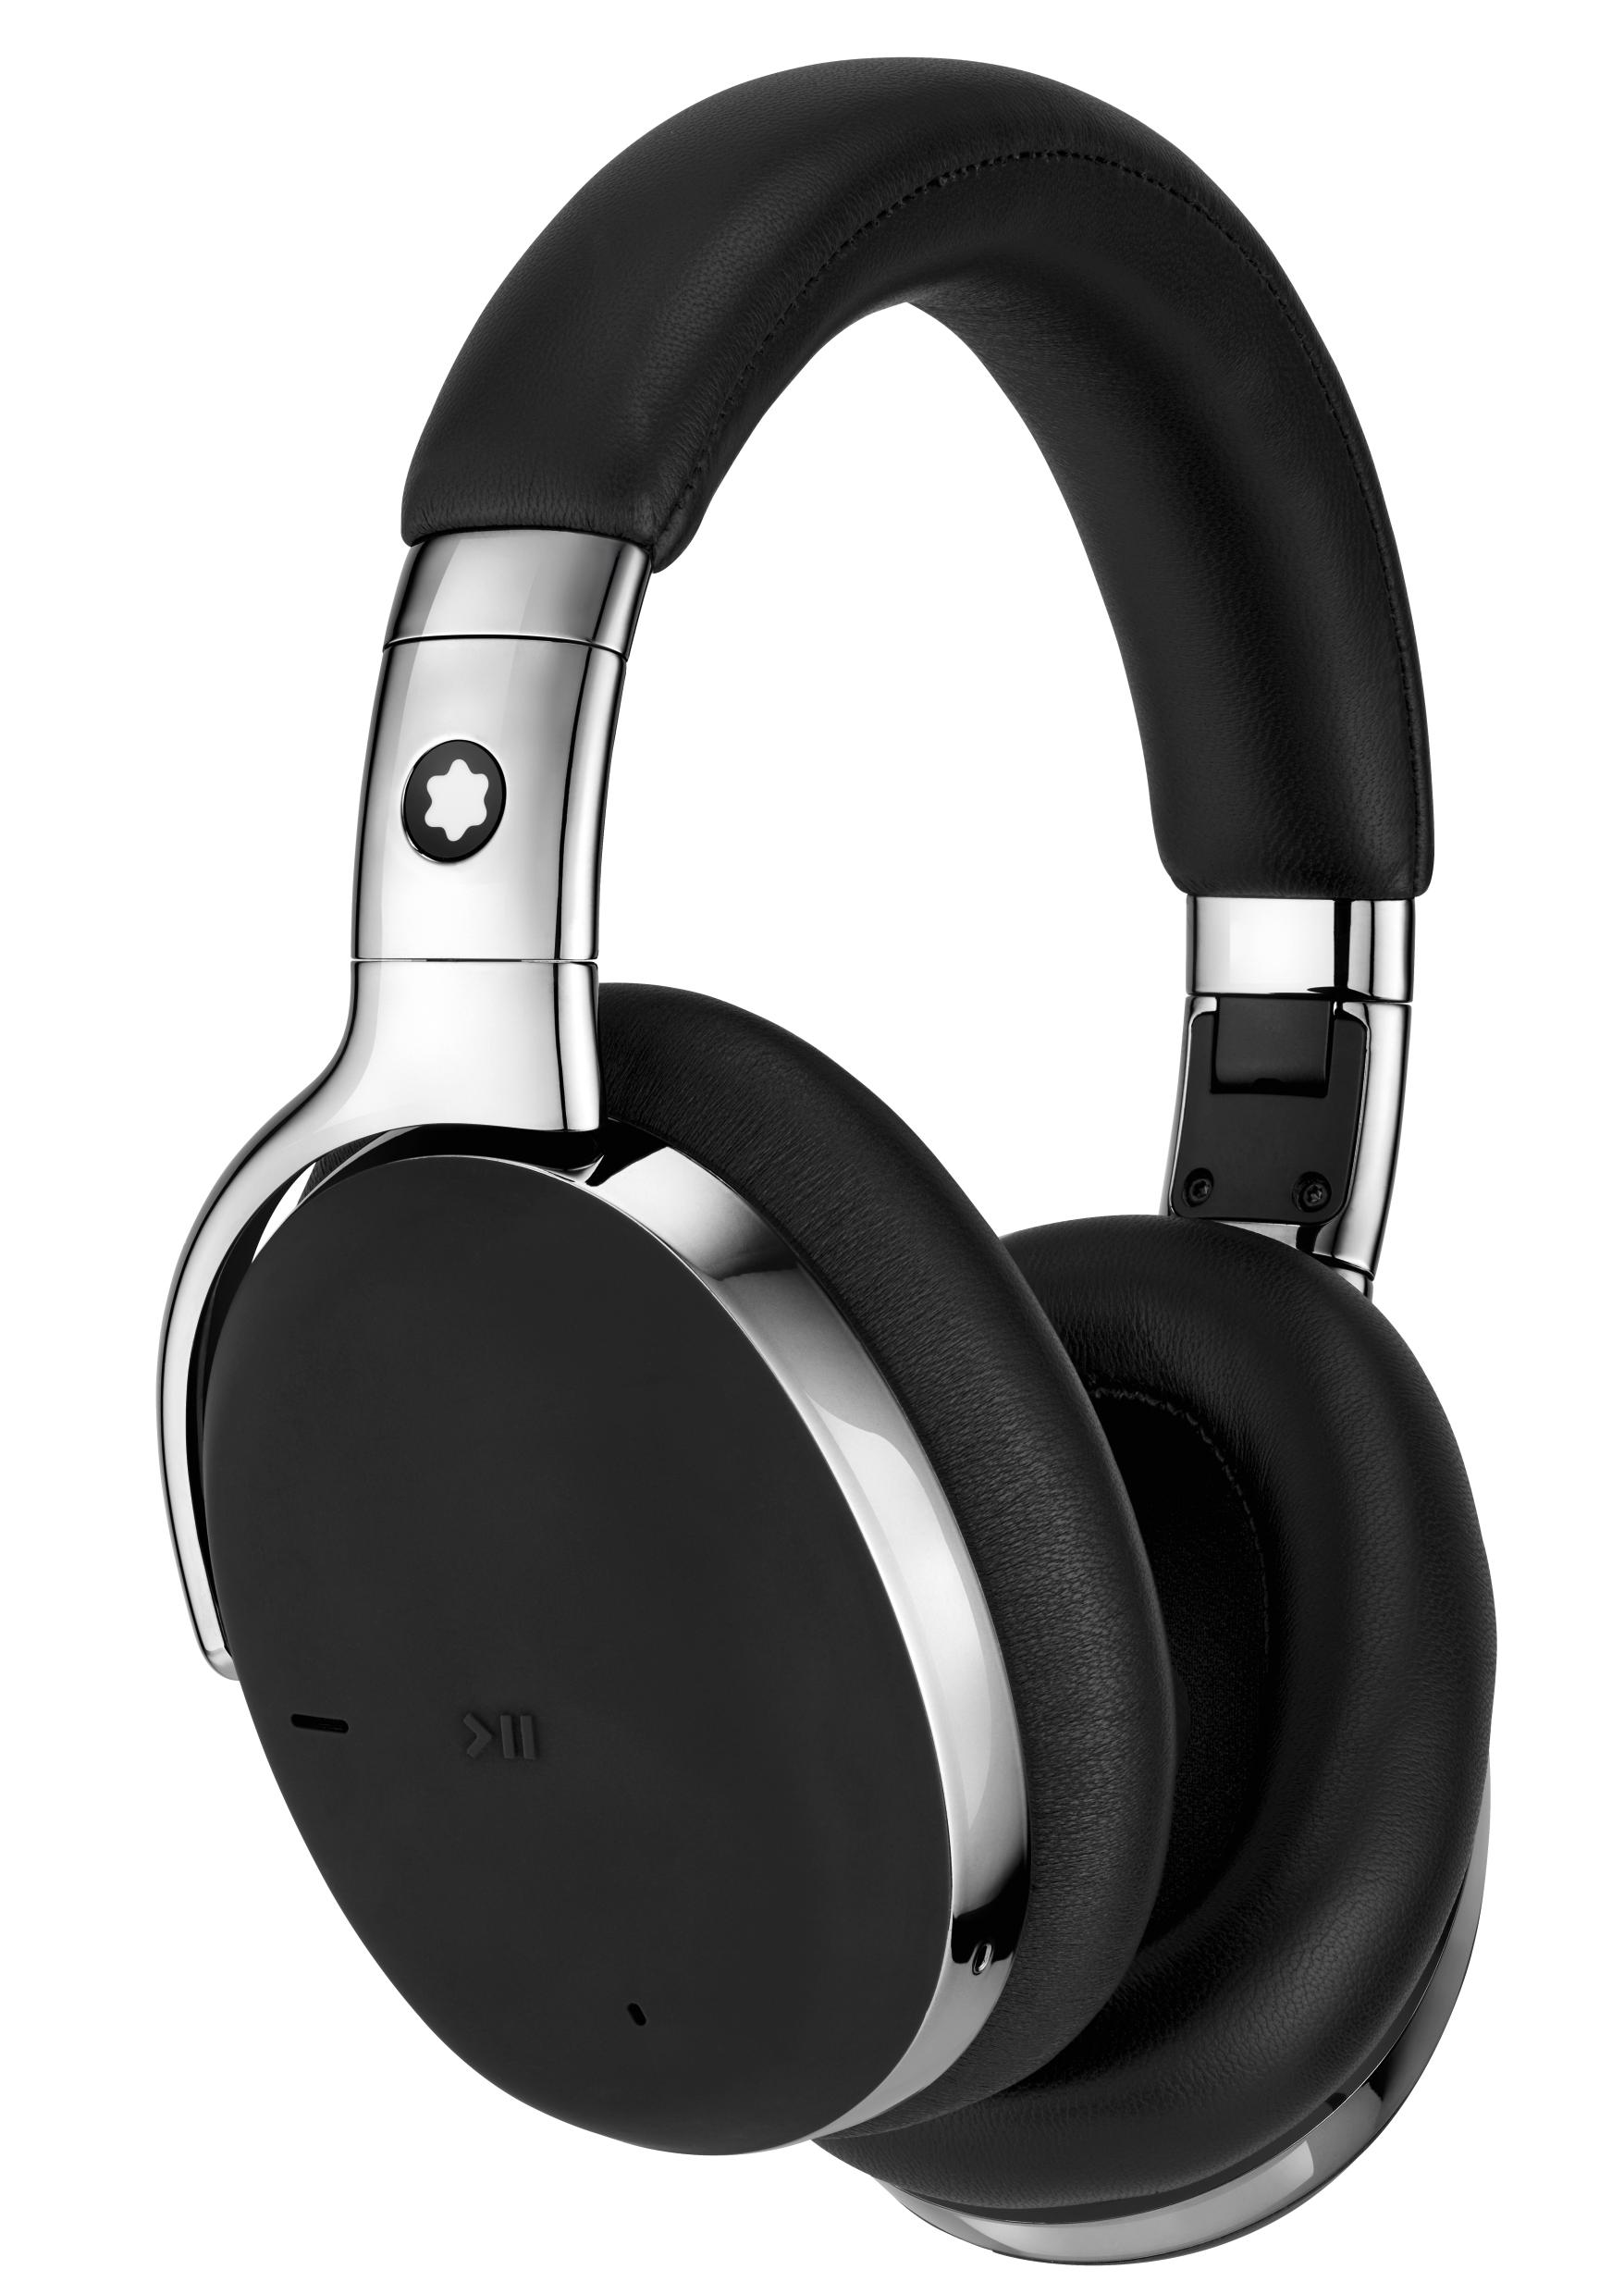 Nouveau casque audio sans fil over-ear Montblanc